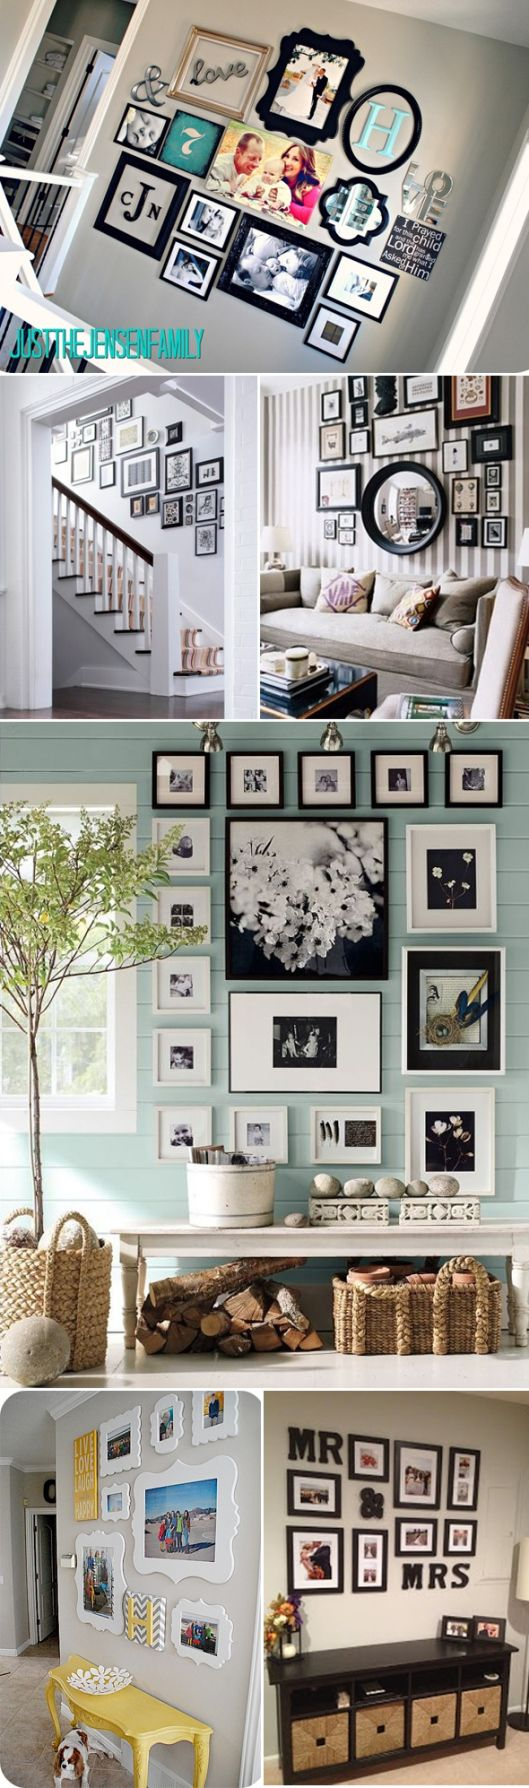 Unique Ways Of Displaying Photographs In Your Home   Frames Galore U2013 Family  Photos Gallery Wall Ideas (Third To Last Photo Decor)   Here Is An  Assortment Of ... Part 70